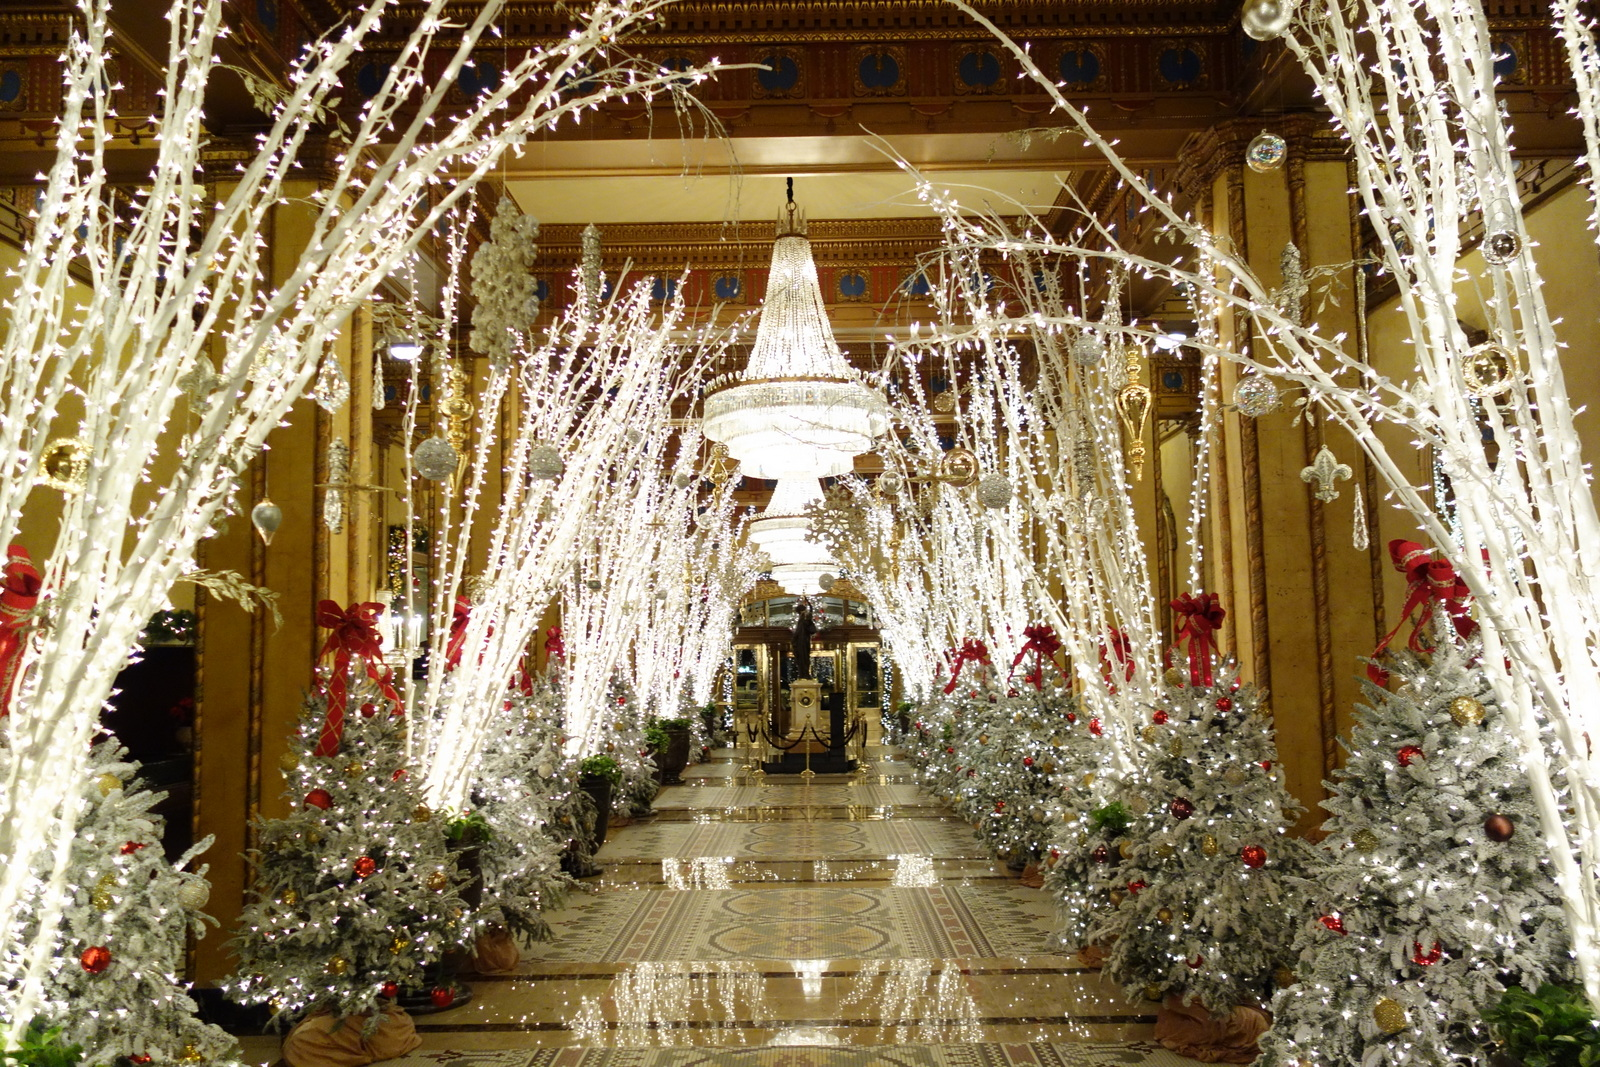 Christmas Decorations In Hotel Lobby : Gonola top christmas decorations in new orleans